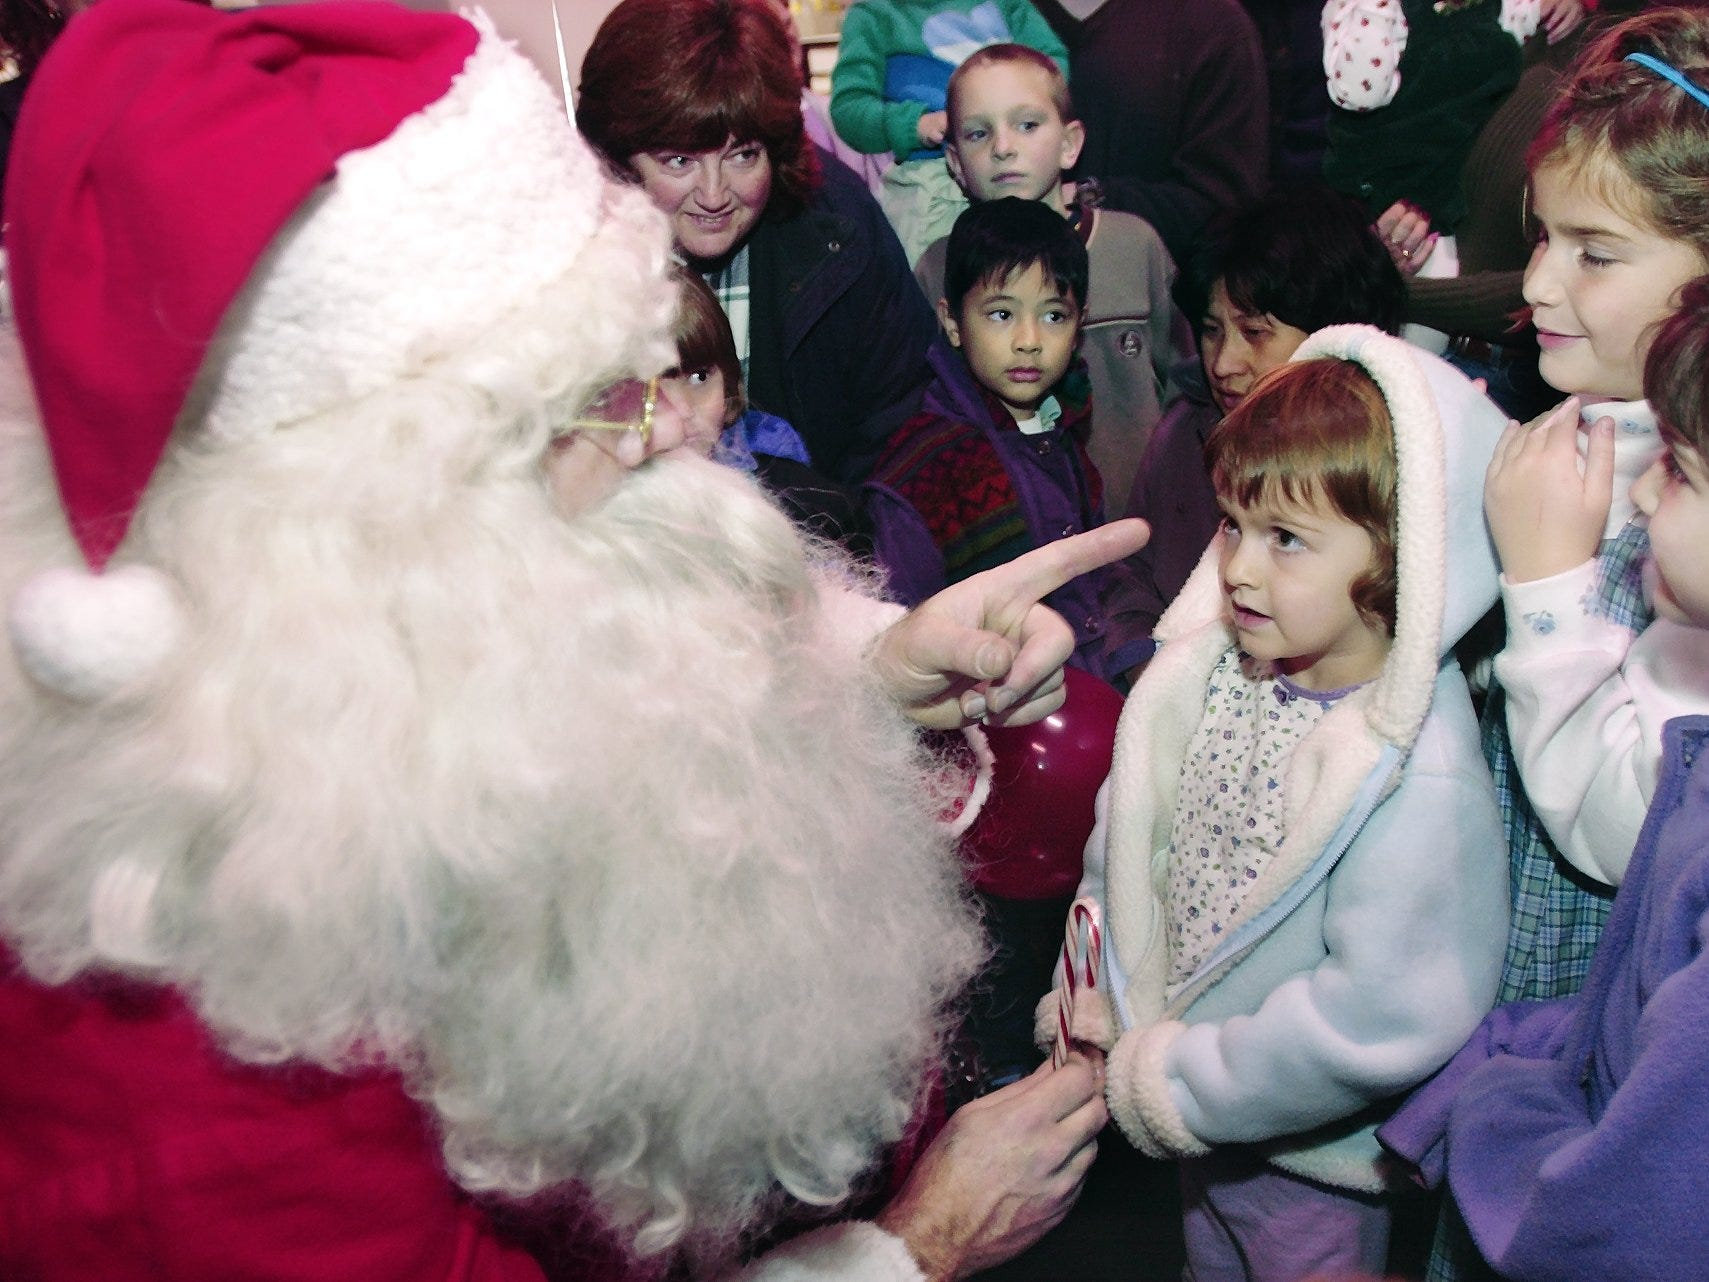 Before getting their candy canes, sisters Casey, 6, right, Erin, 8, and Bridget Futsko, 3, ask Santa Claus for a trampoline for Christmas in Center Ithaca in 2001. Santa Claus arrived at the Commons on an Ithaca Fire Department fire truck, instead of his usual reindeer, to open up the holiday season.